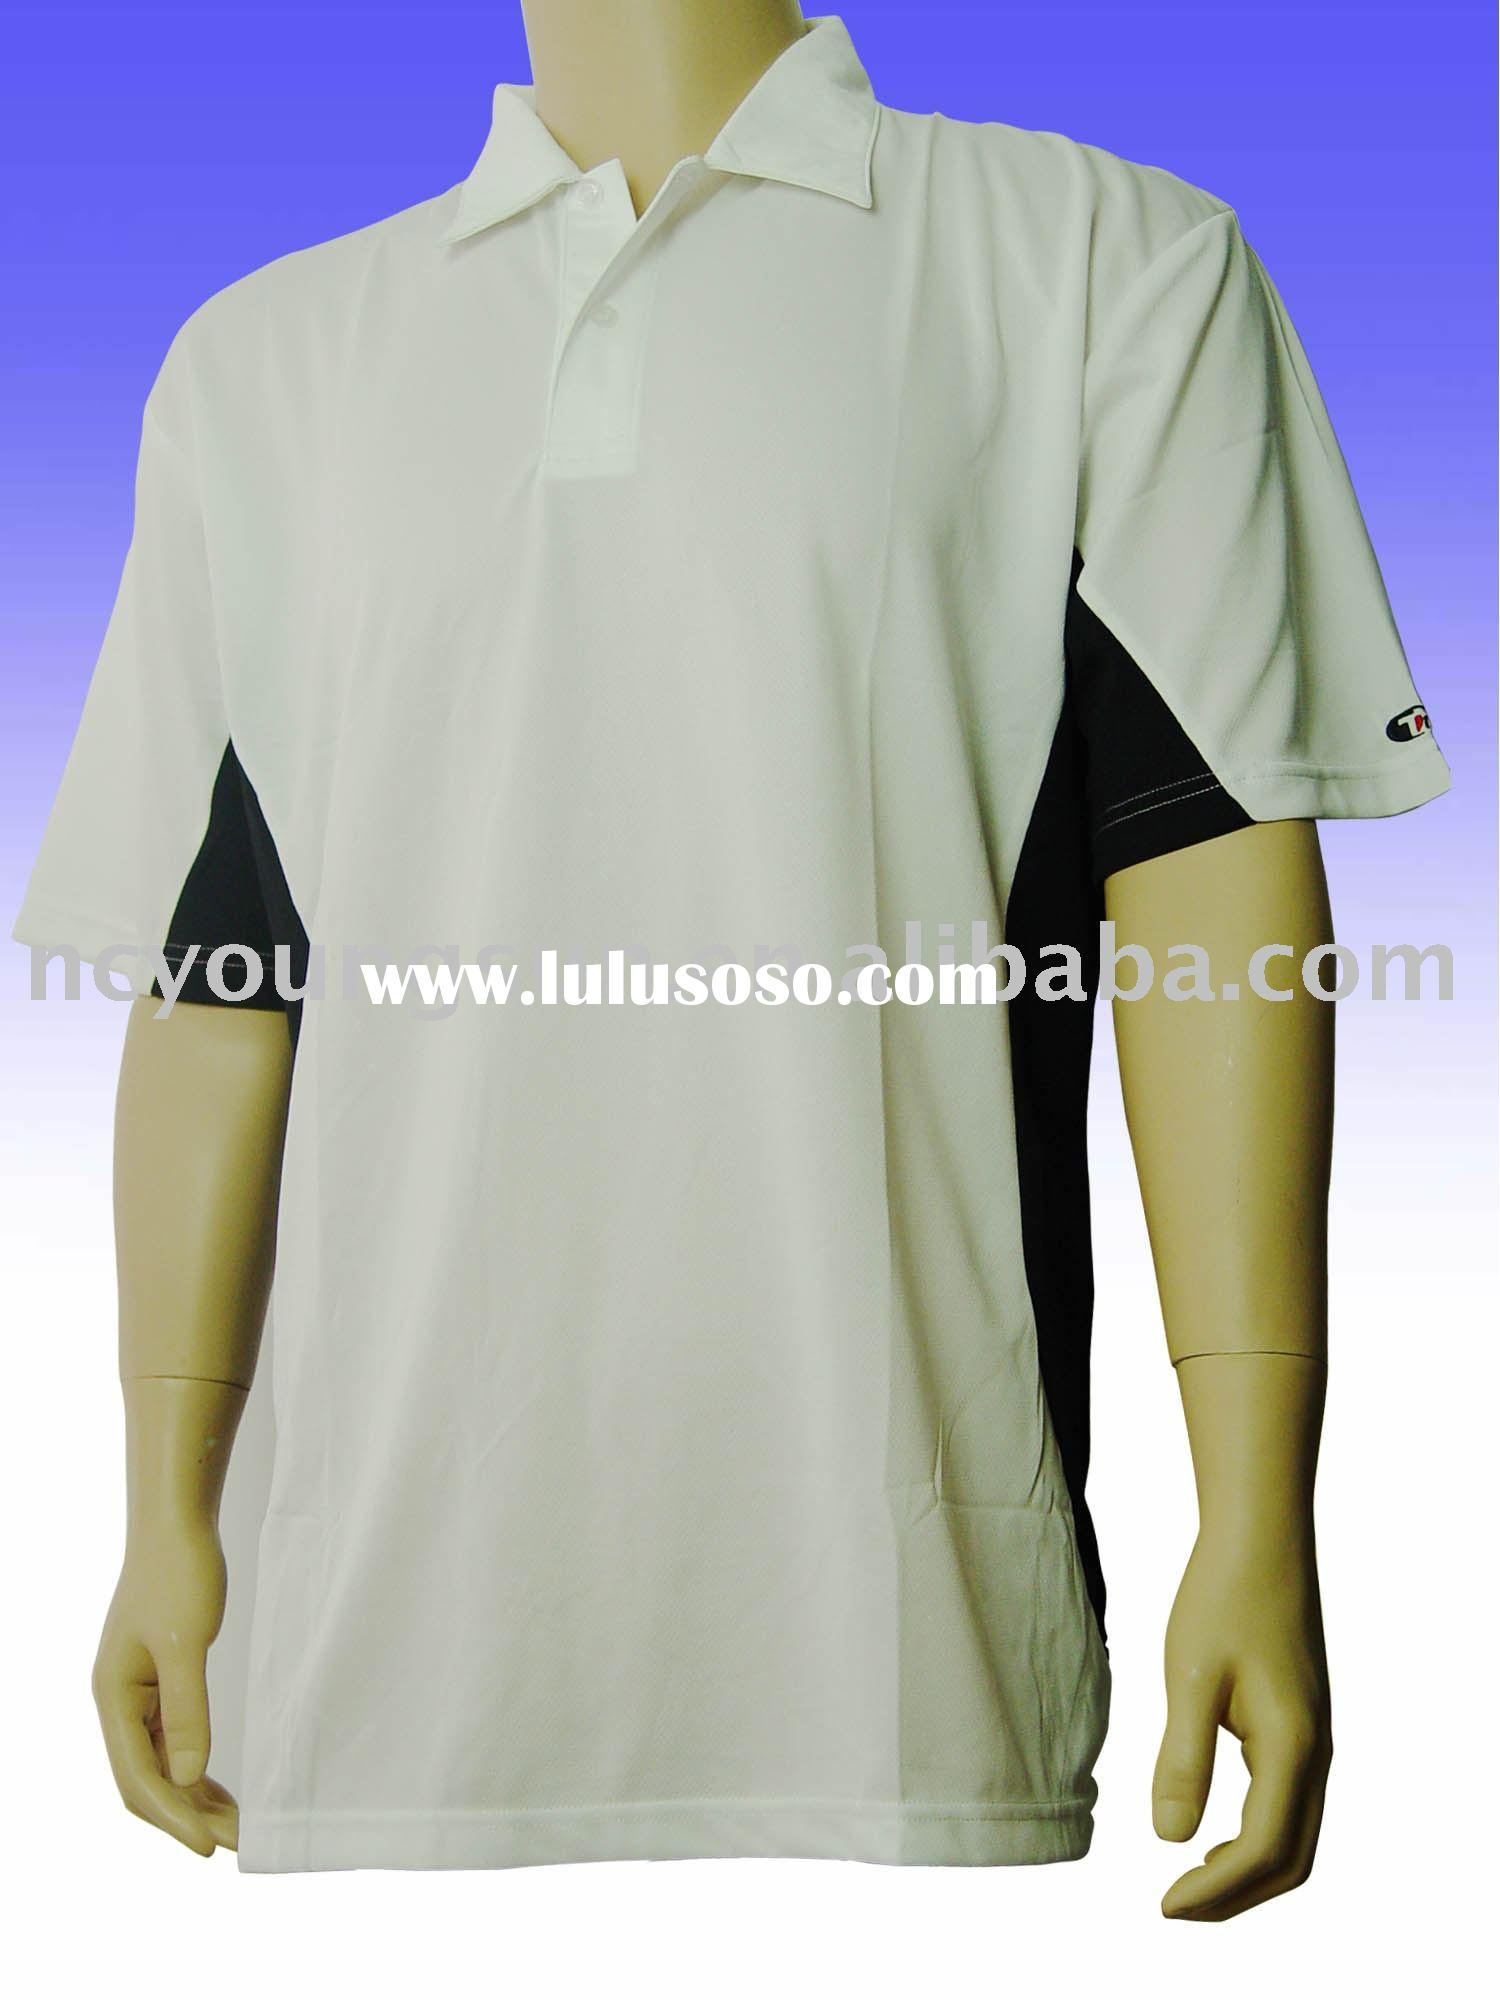 dry-fit polo shirt, cool-fit golf shirts, men' tshirts